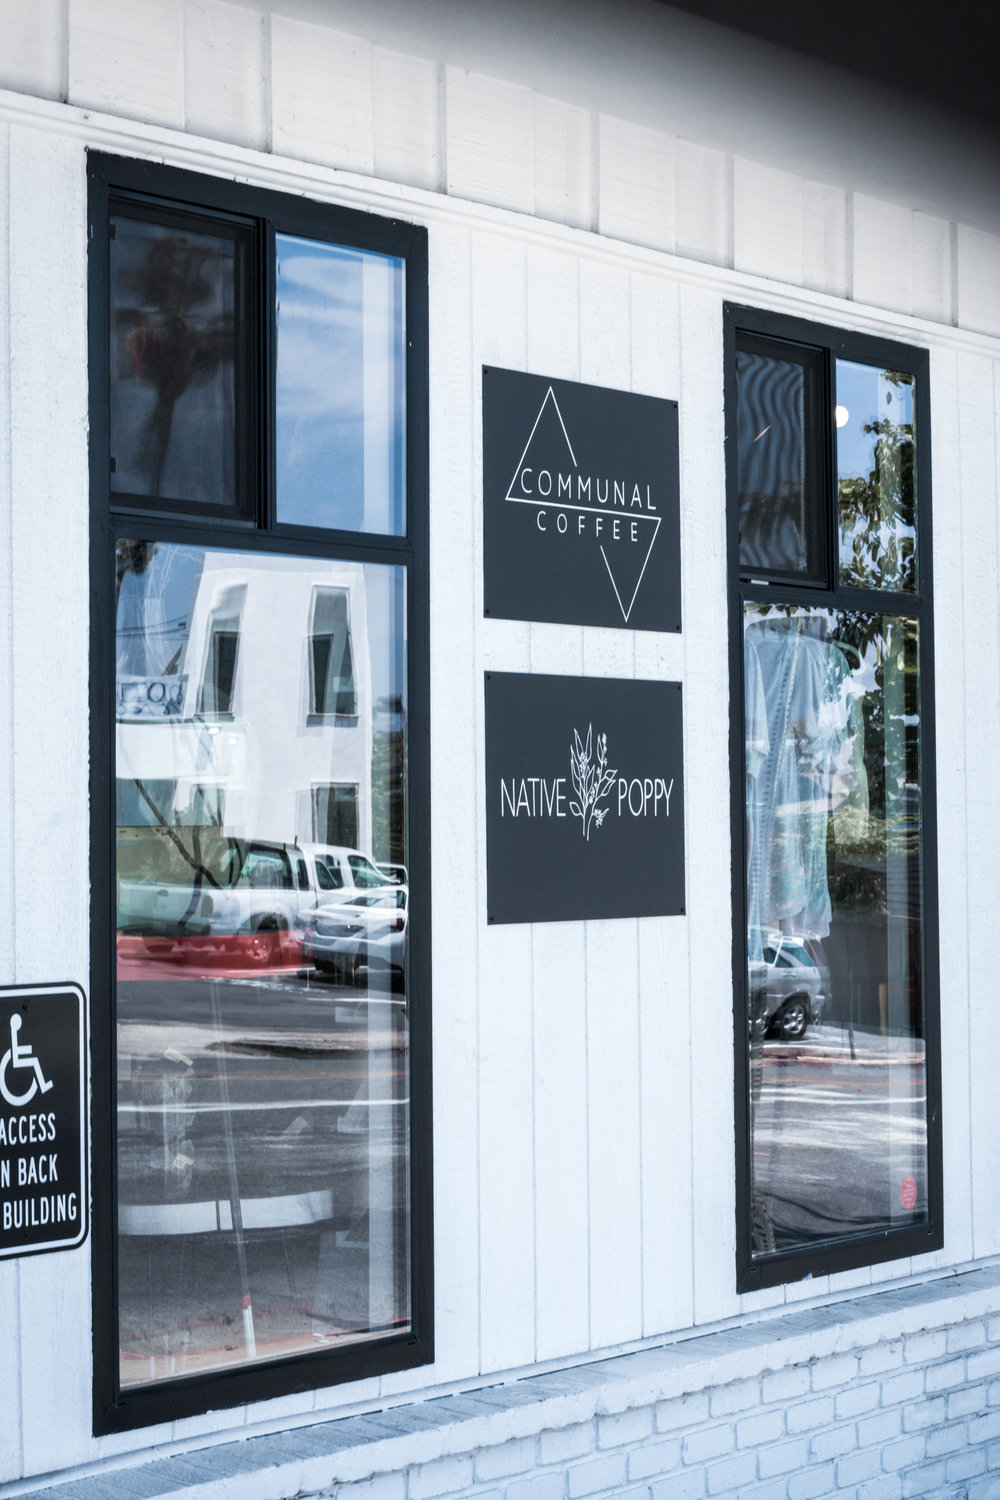 the front door of communal coffee and native coffee in san diego